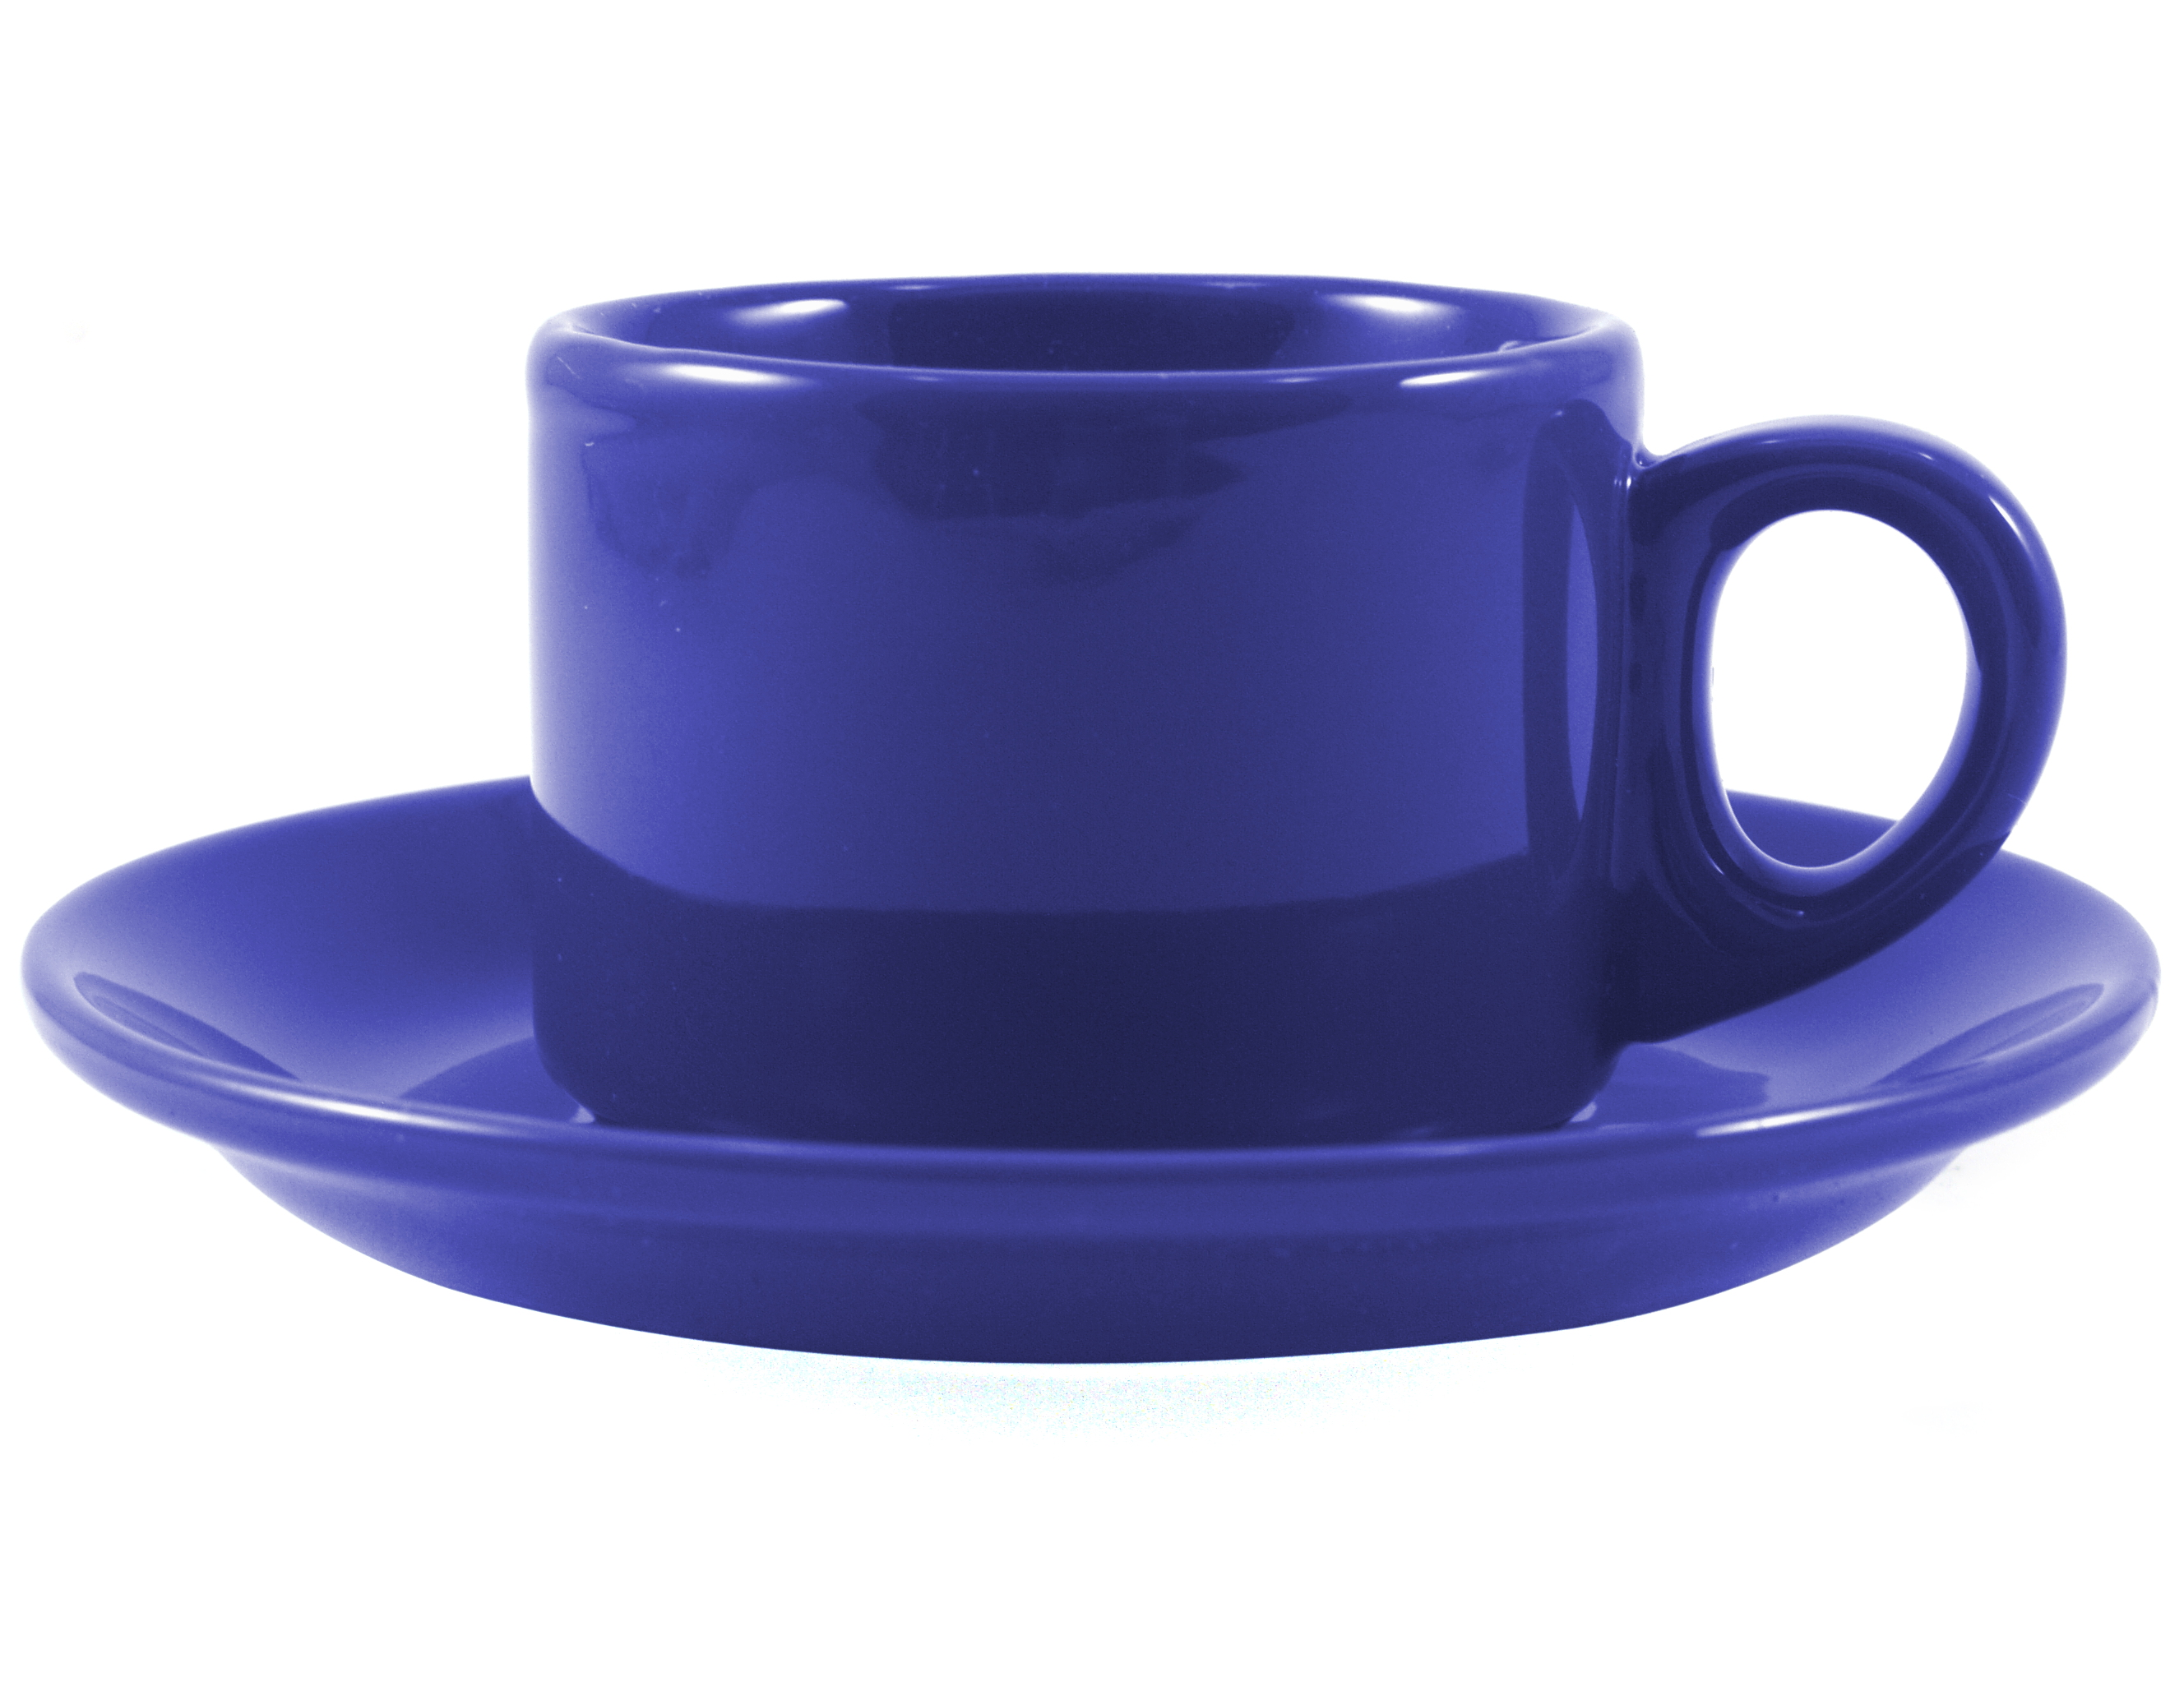 Omniware Espresso Coffee Delight Blue Stoneware Mug and Saucer Service for 2